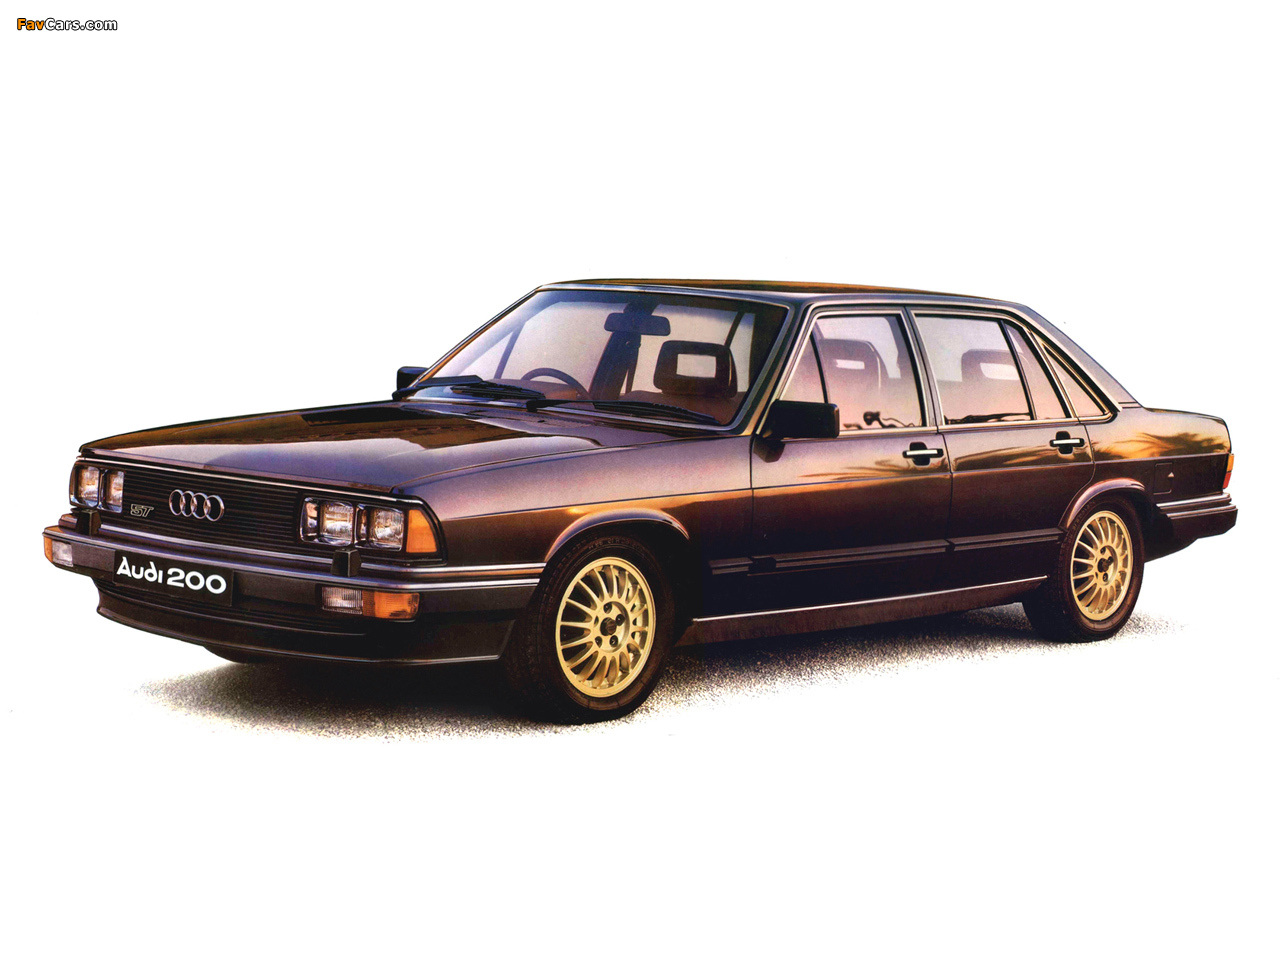 Pictures of Audi 200 5T 43 (1979-1982) (1280x960)